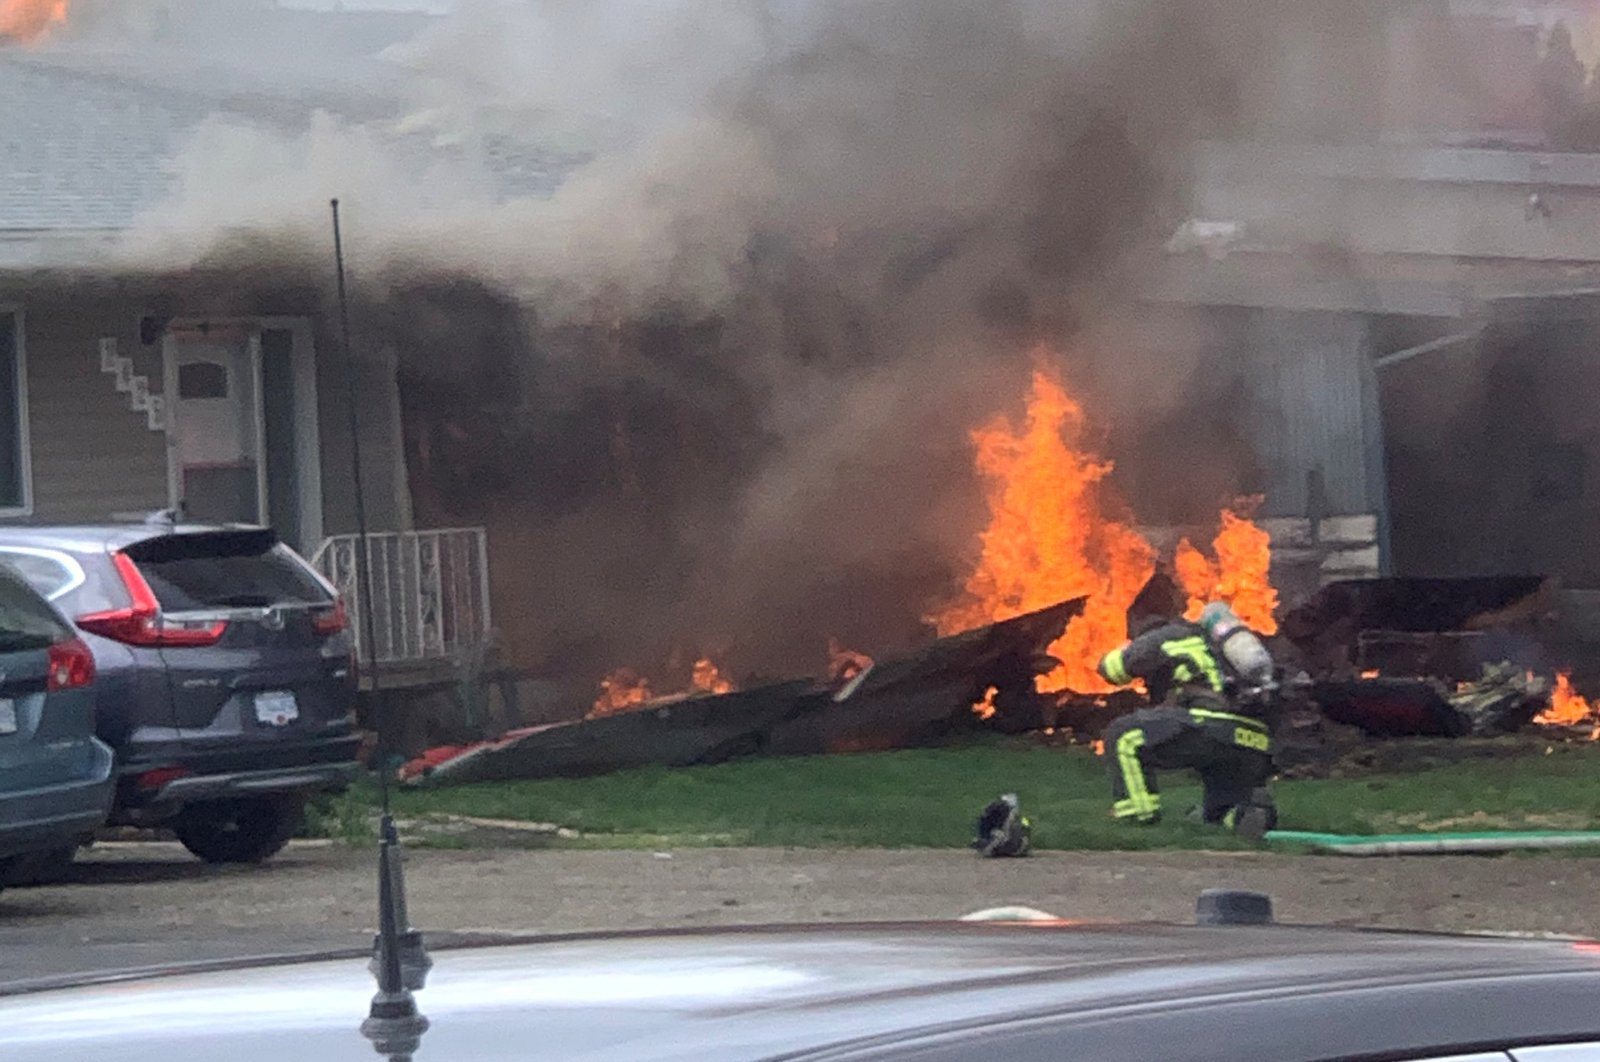 This image obtained from social media shows the crash site of a jet from the Canadian air force's Snowbirds aerobatics team is seen in a residential neighborhood in Kamloops, British Columbia, Canada, May 17, 2020. (Courtesy of Elwood Delaney/via Reuters)